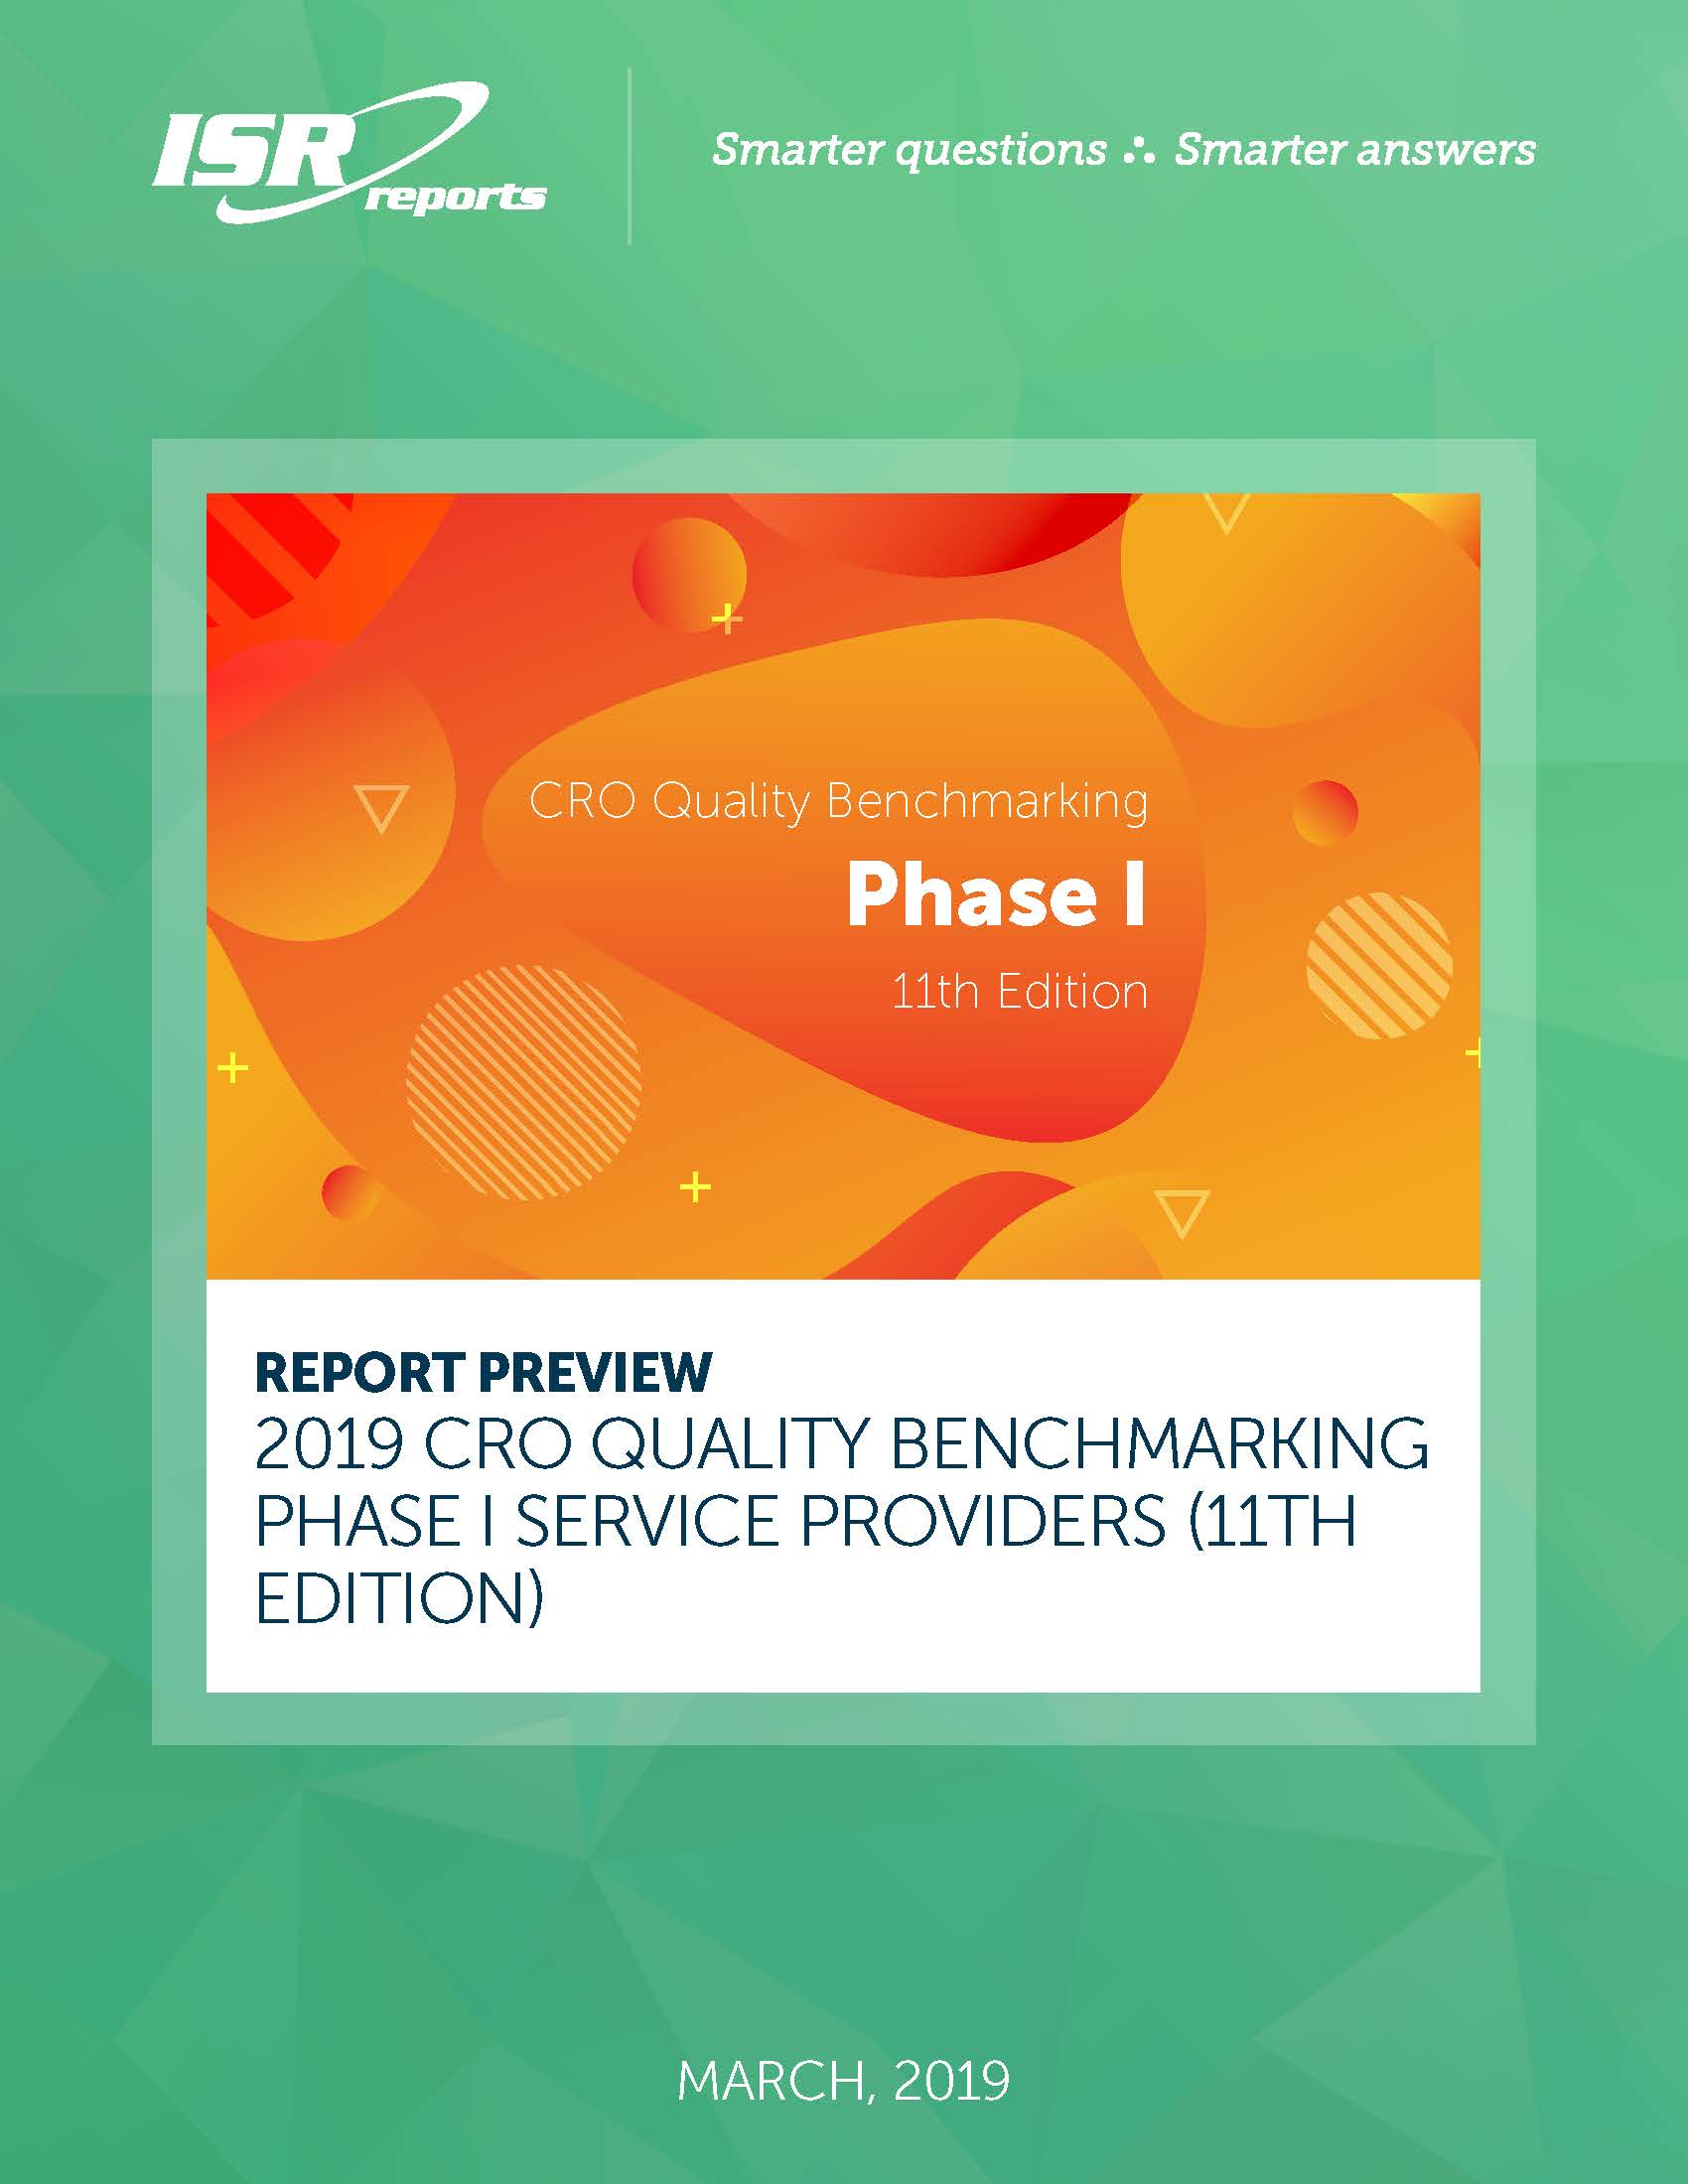 CRO Quality Benchmarking – Phase I Service Providers (11th Edition) report cover